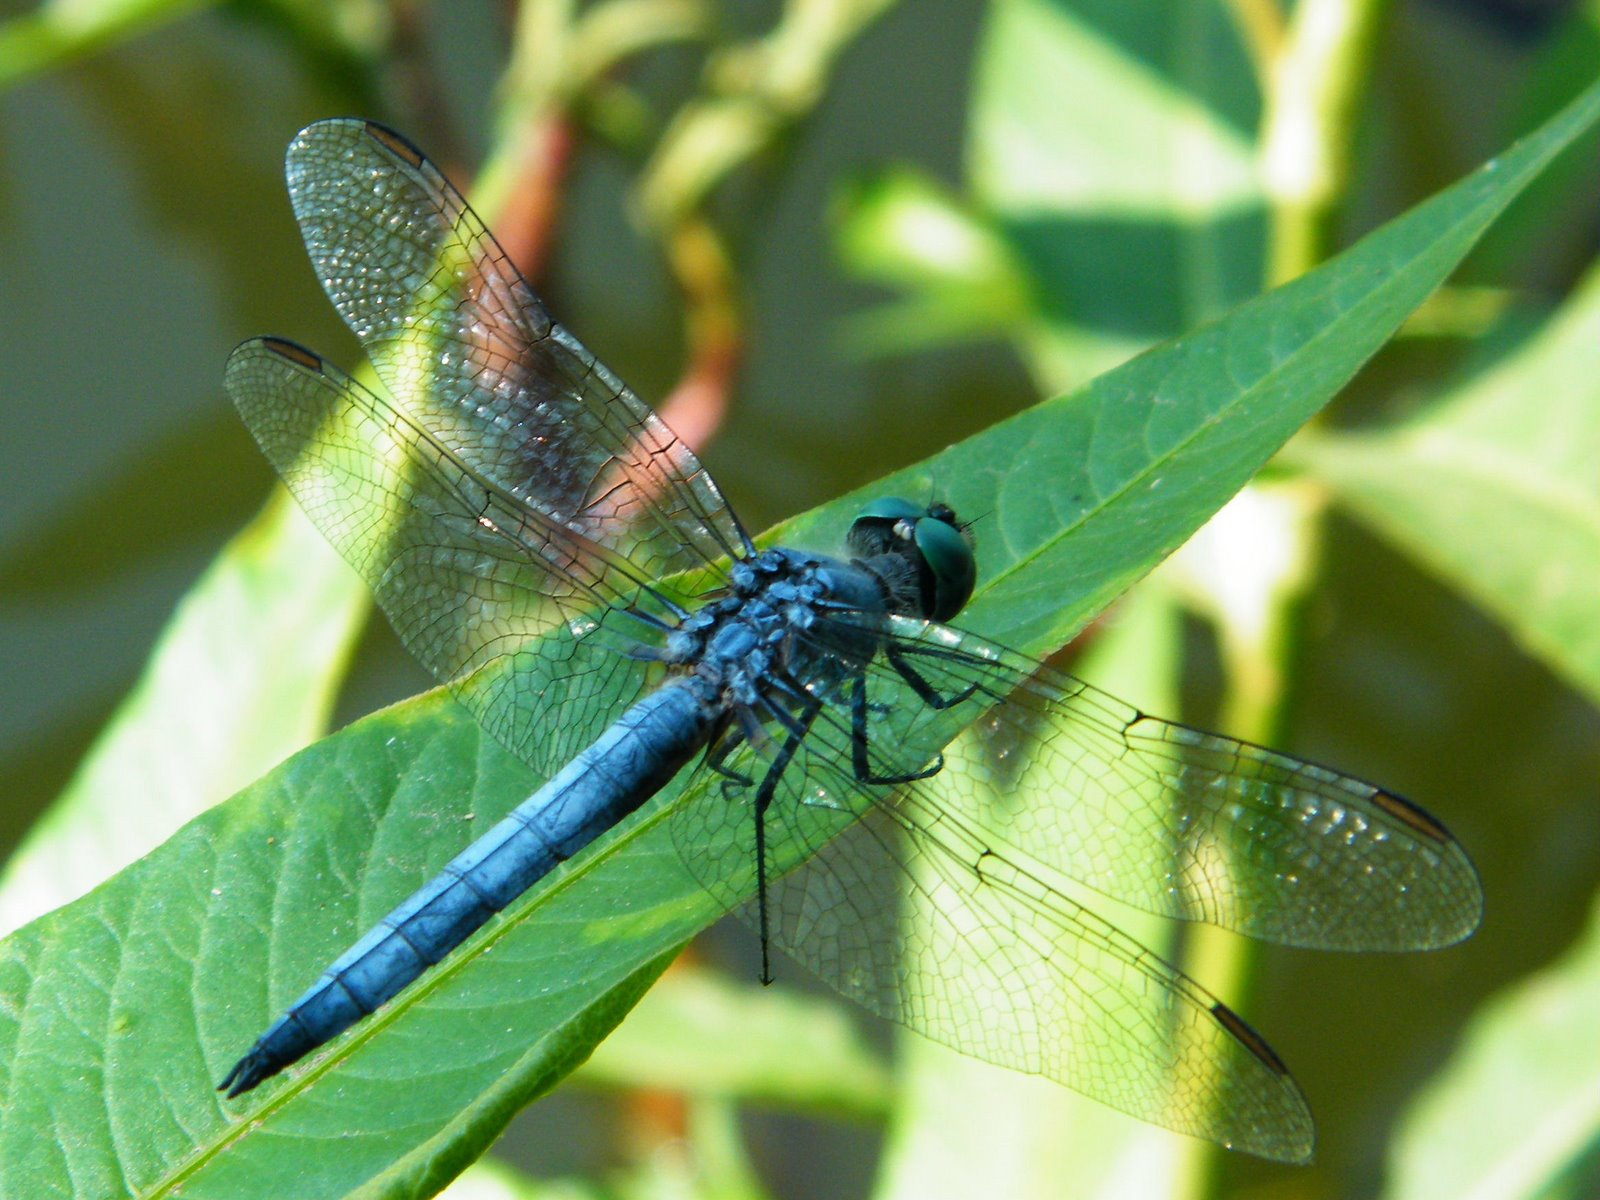 Insect Blue Dragonfly On A Leaf Photo Picture Gallery HD Wallpapers PC Desktop